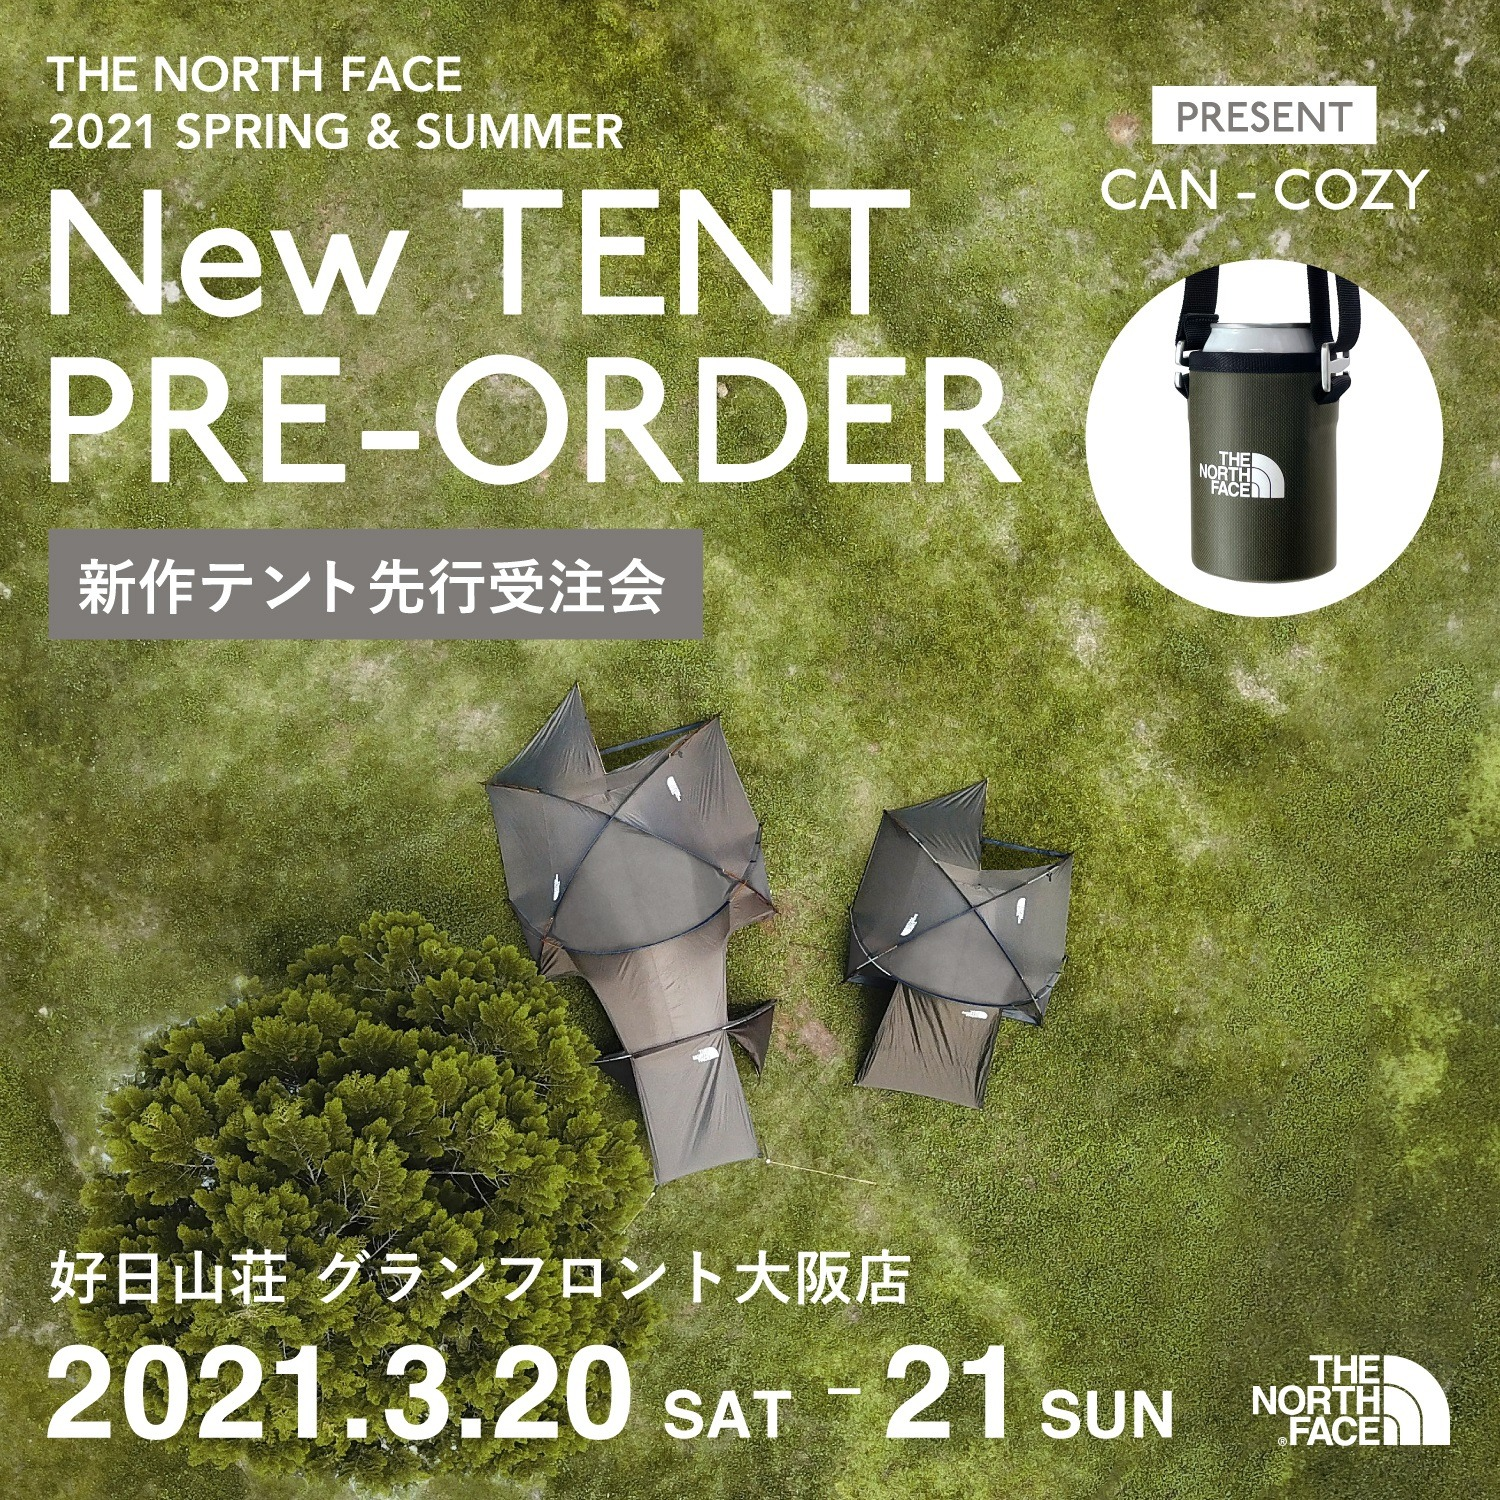 【THE NORTH FACE】テント展示会開催